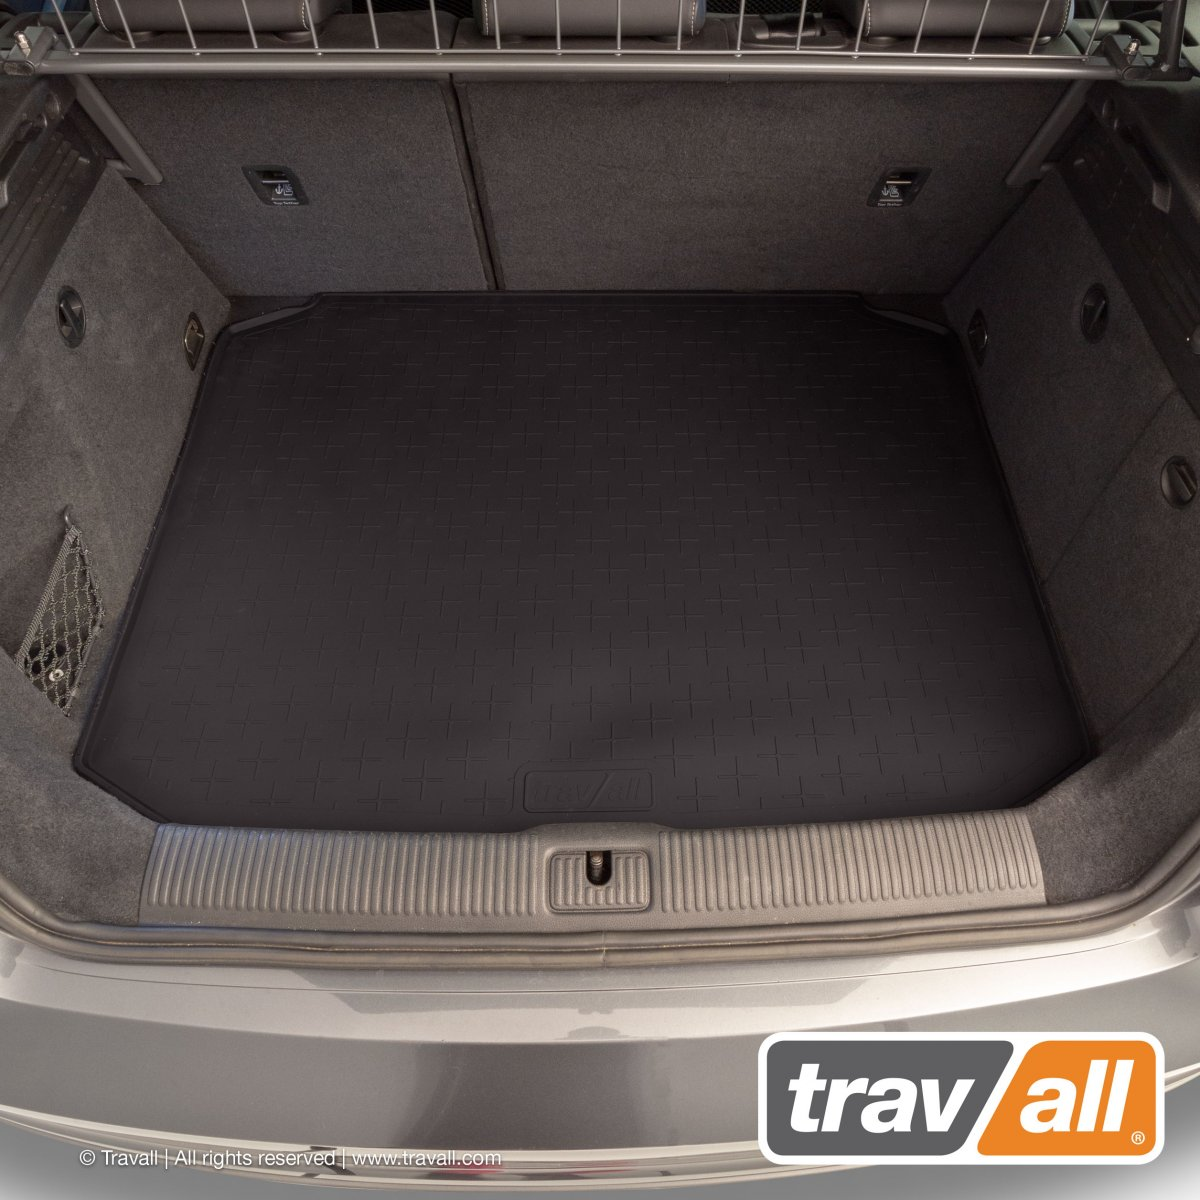 Travall® CARGOMAT for Audi A3 Sportback (2012 >) / S3 (2013 >) / RS 3 (2015 >)